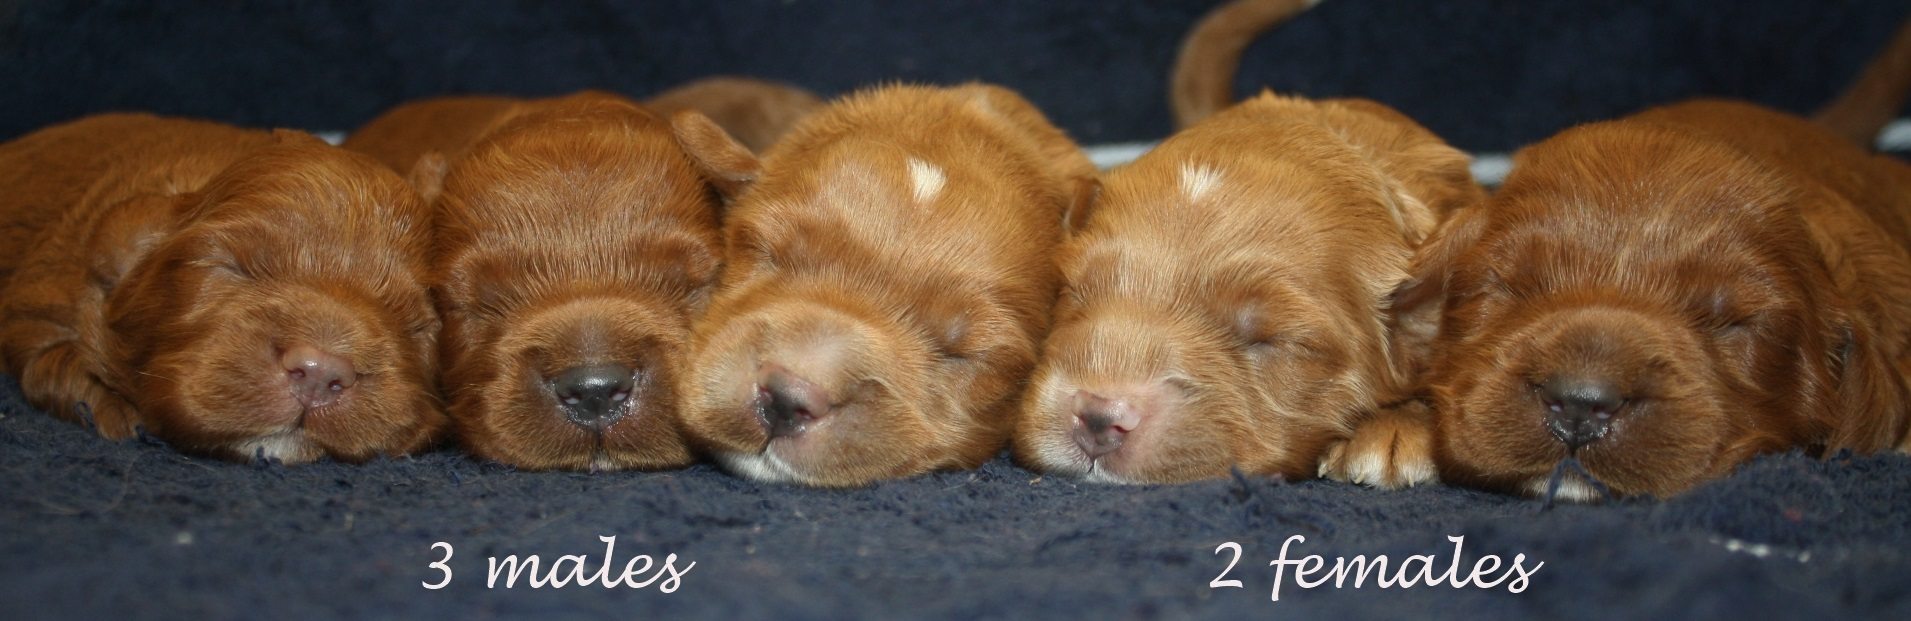 AVAILABLE PUPPIES - www timshell-puppies com